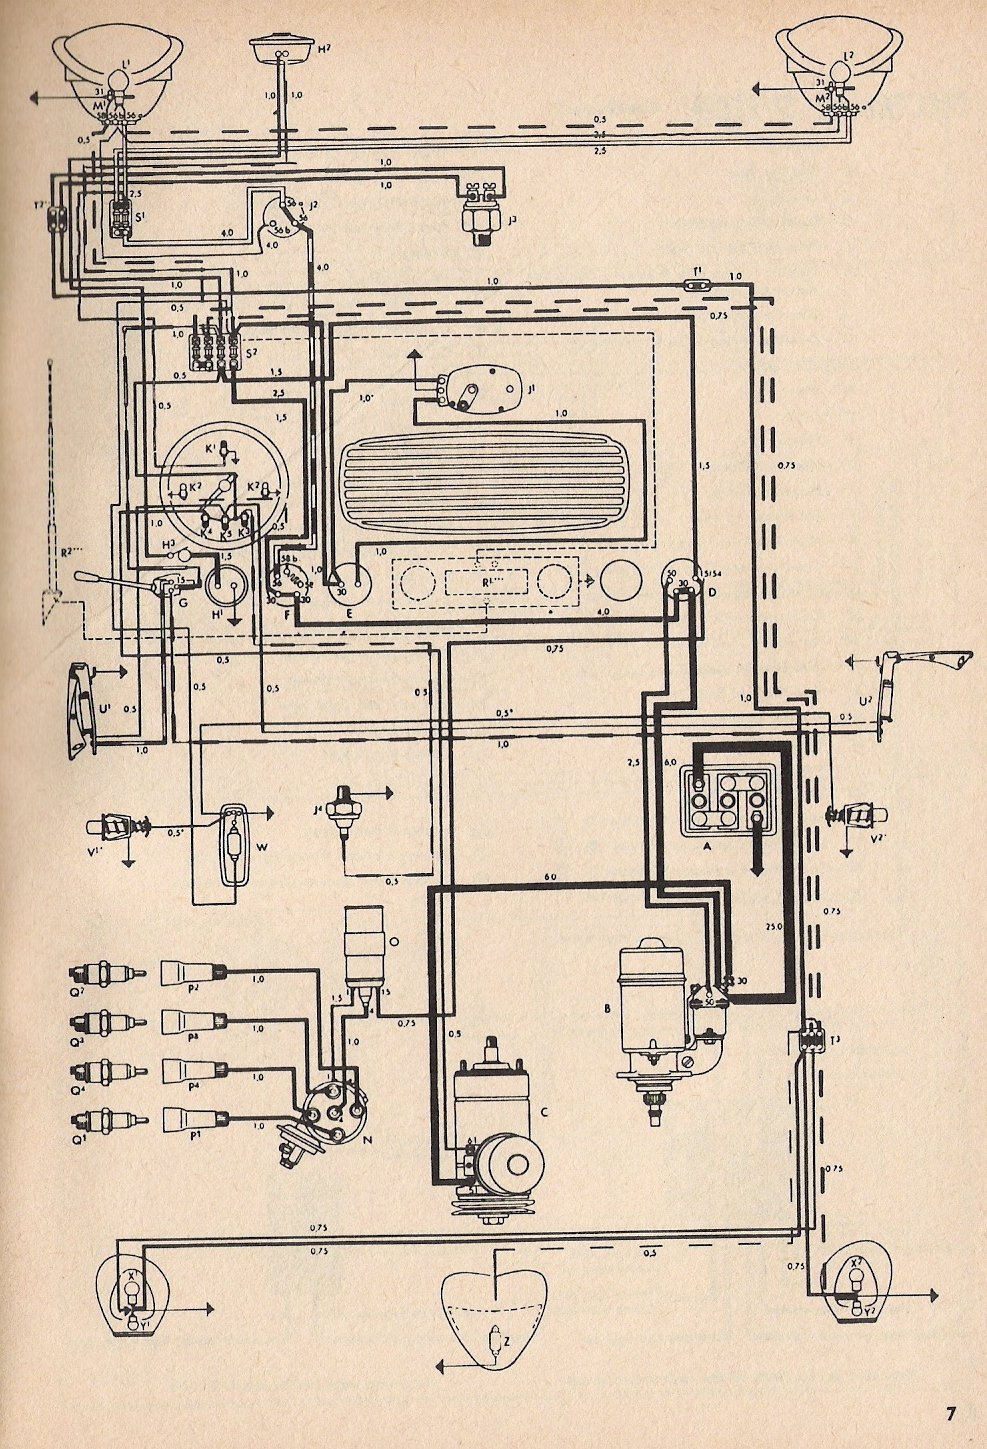 1969 vw bug wiring schematic diy enthusiasts wiring diagrams u2022 rh broadwaycomputers us